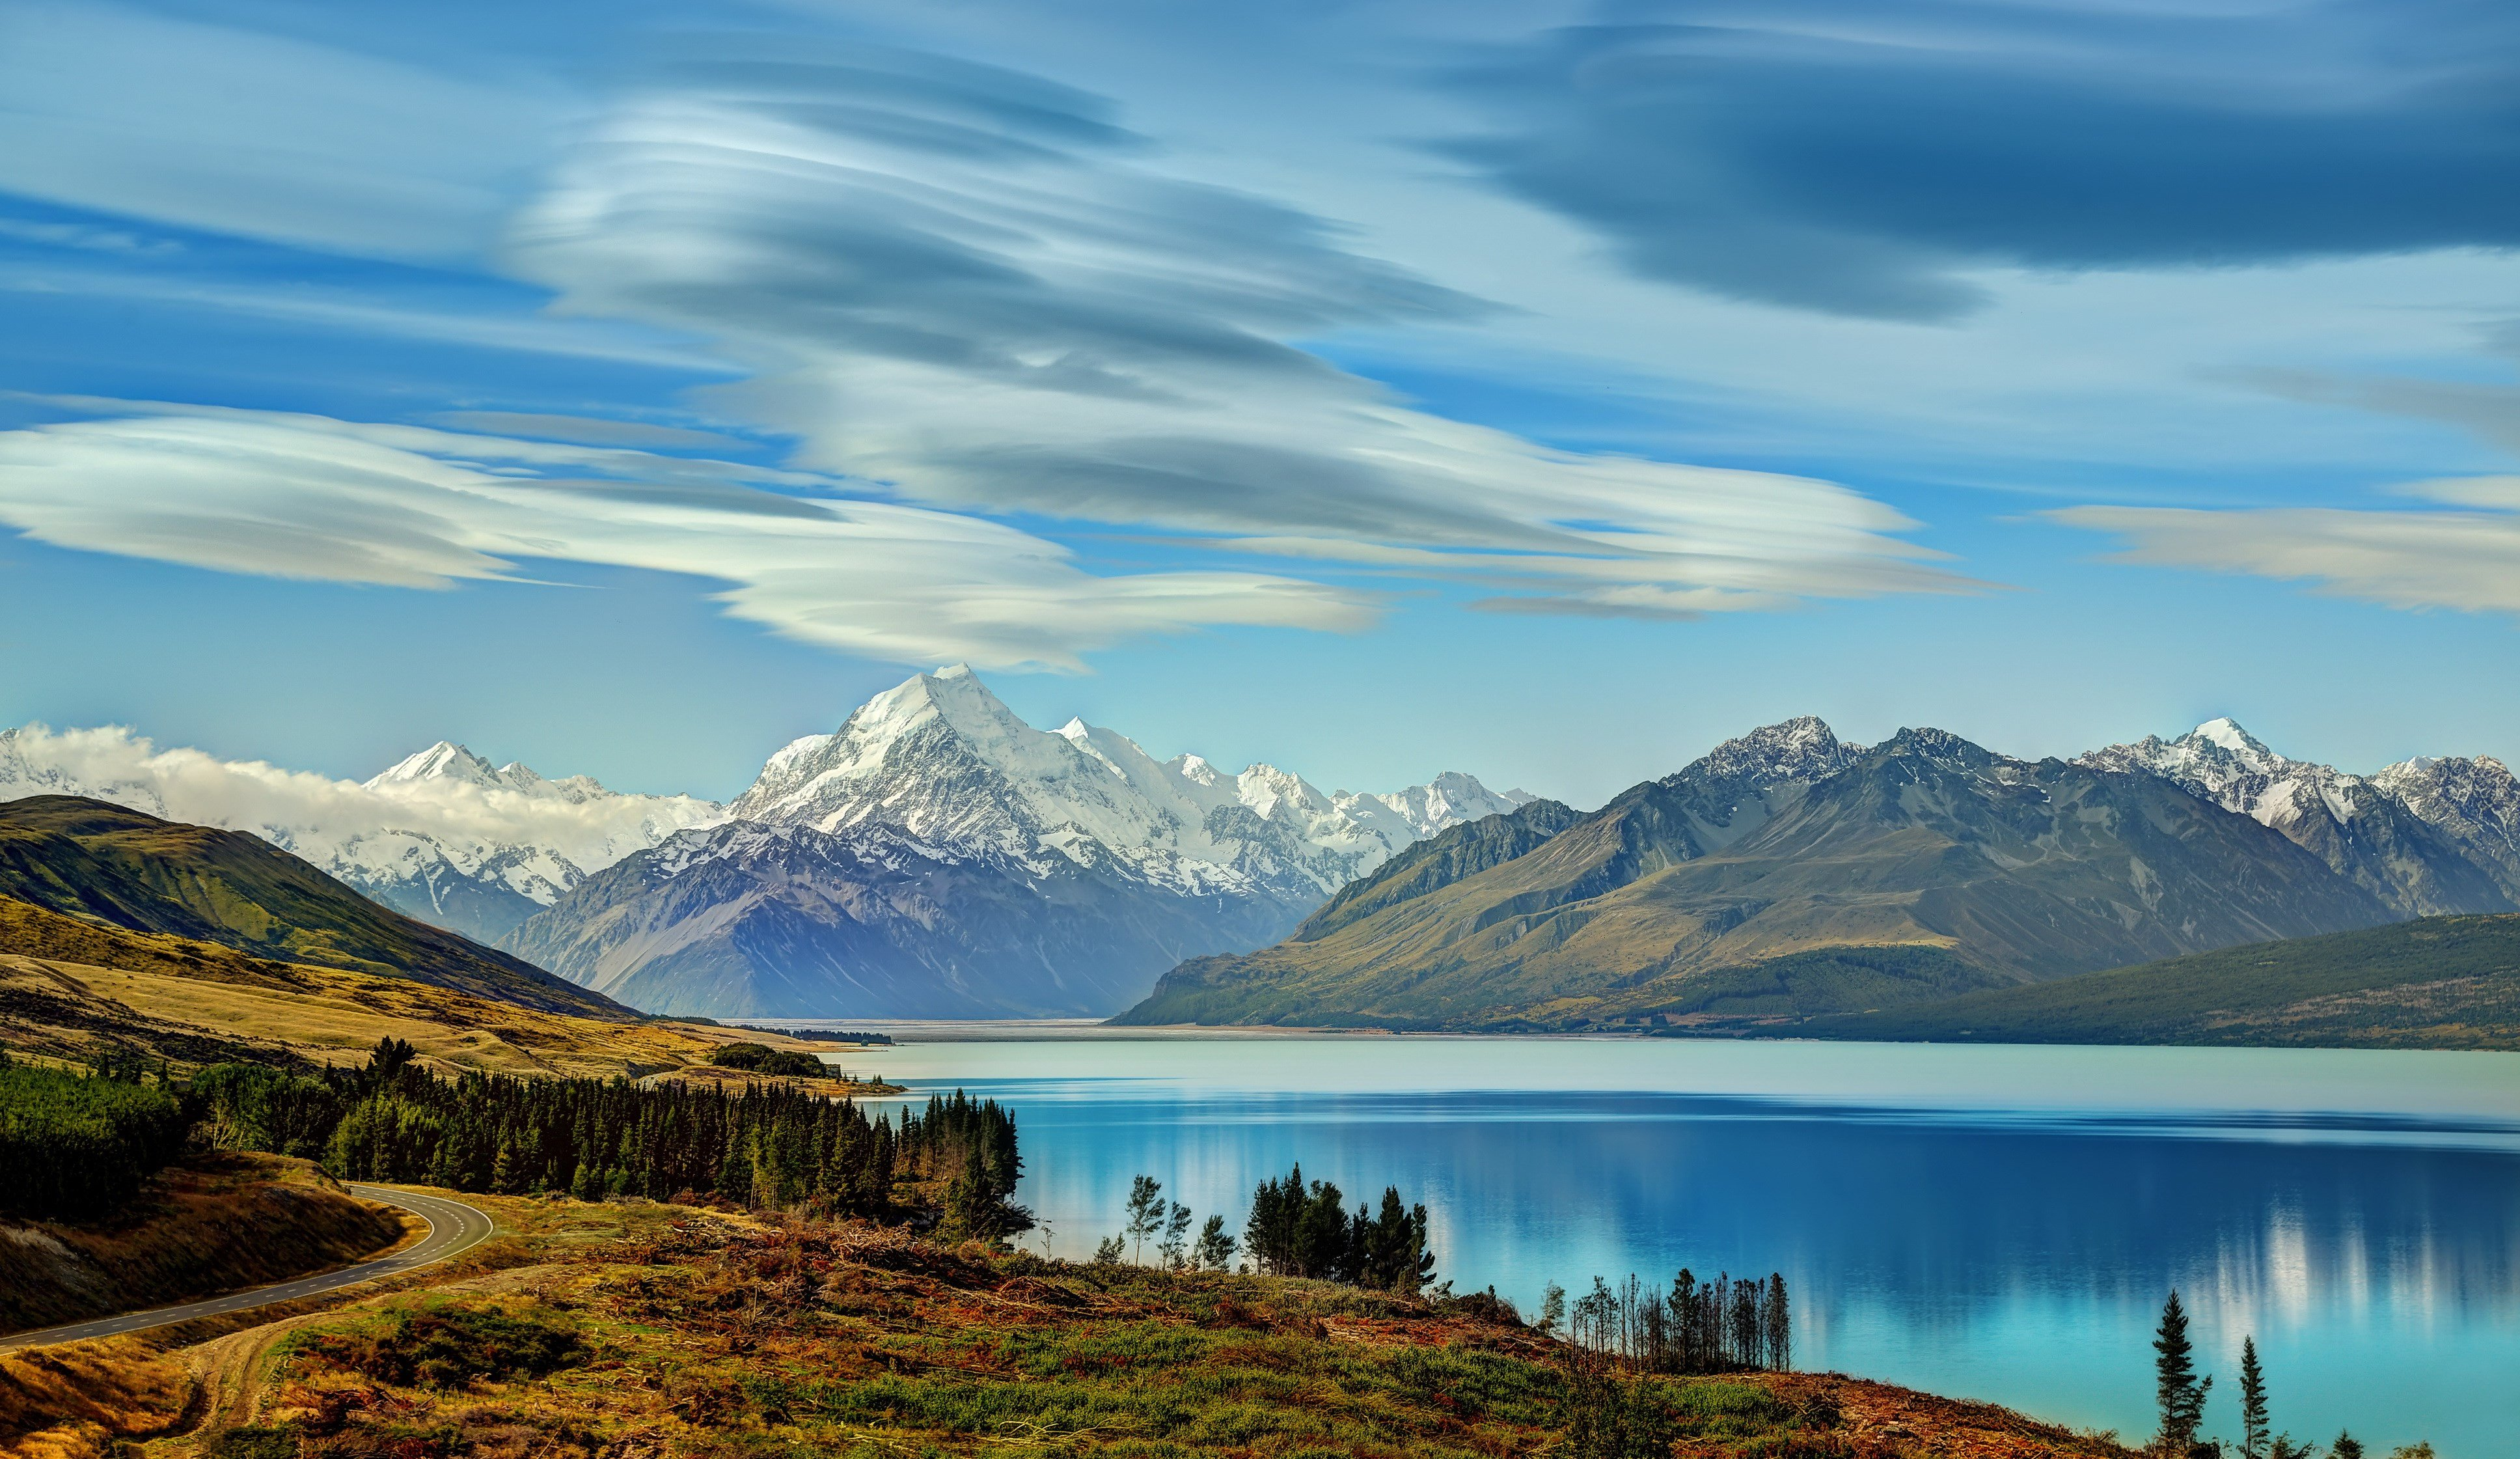 Mesmerizing Lake in New Zealand wallpaper